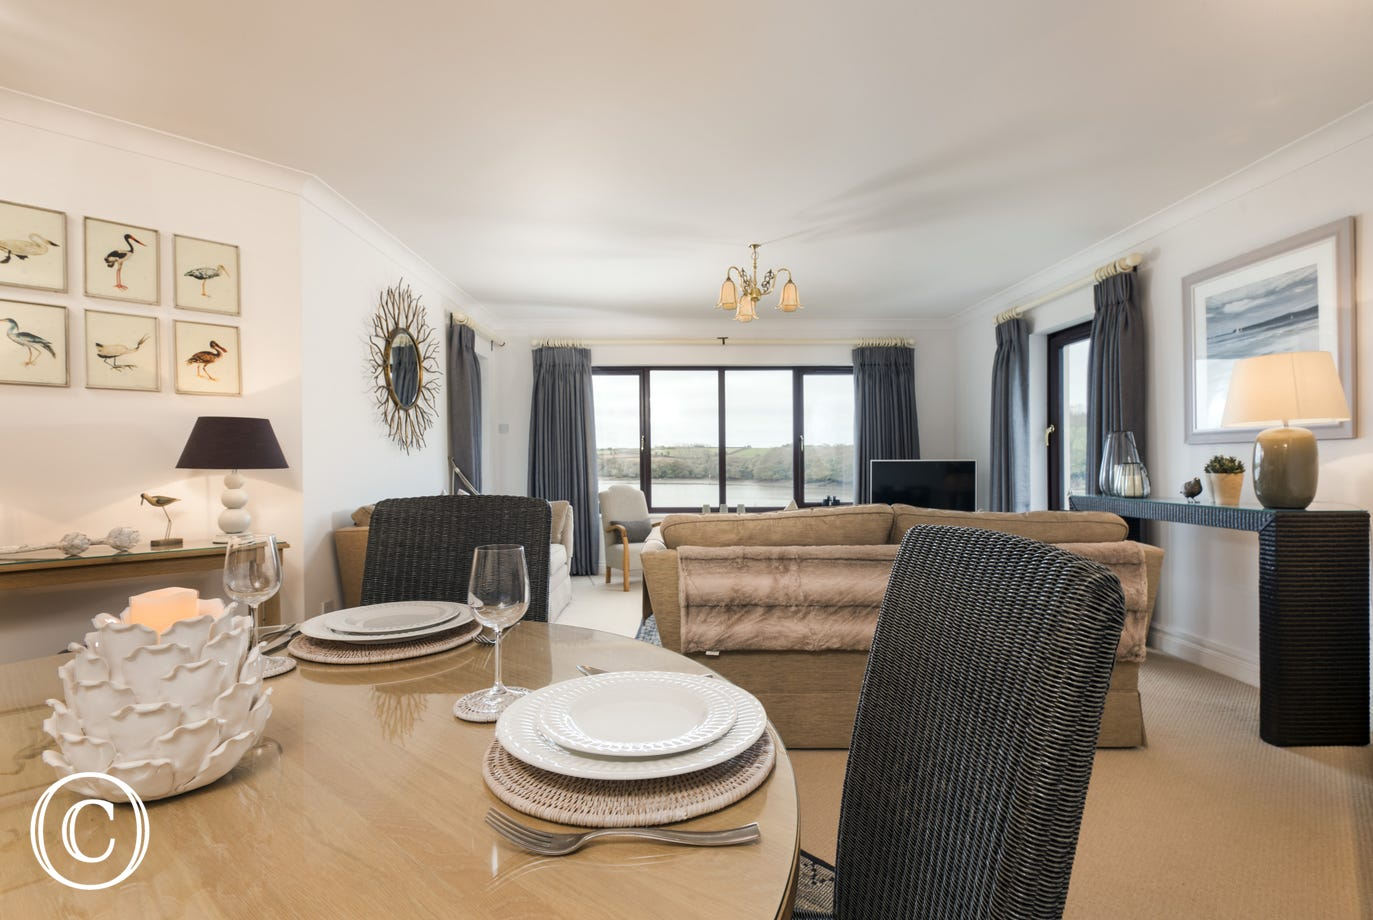 open plan living and dining area, bright and spacious with modern stylish furnishings